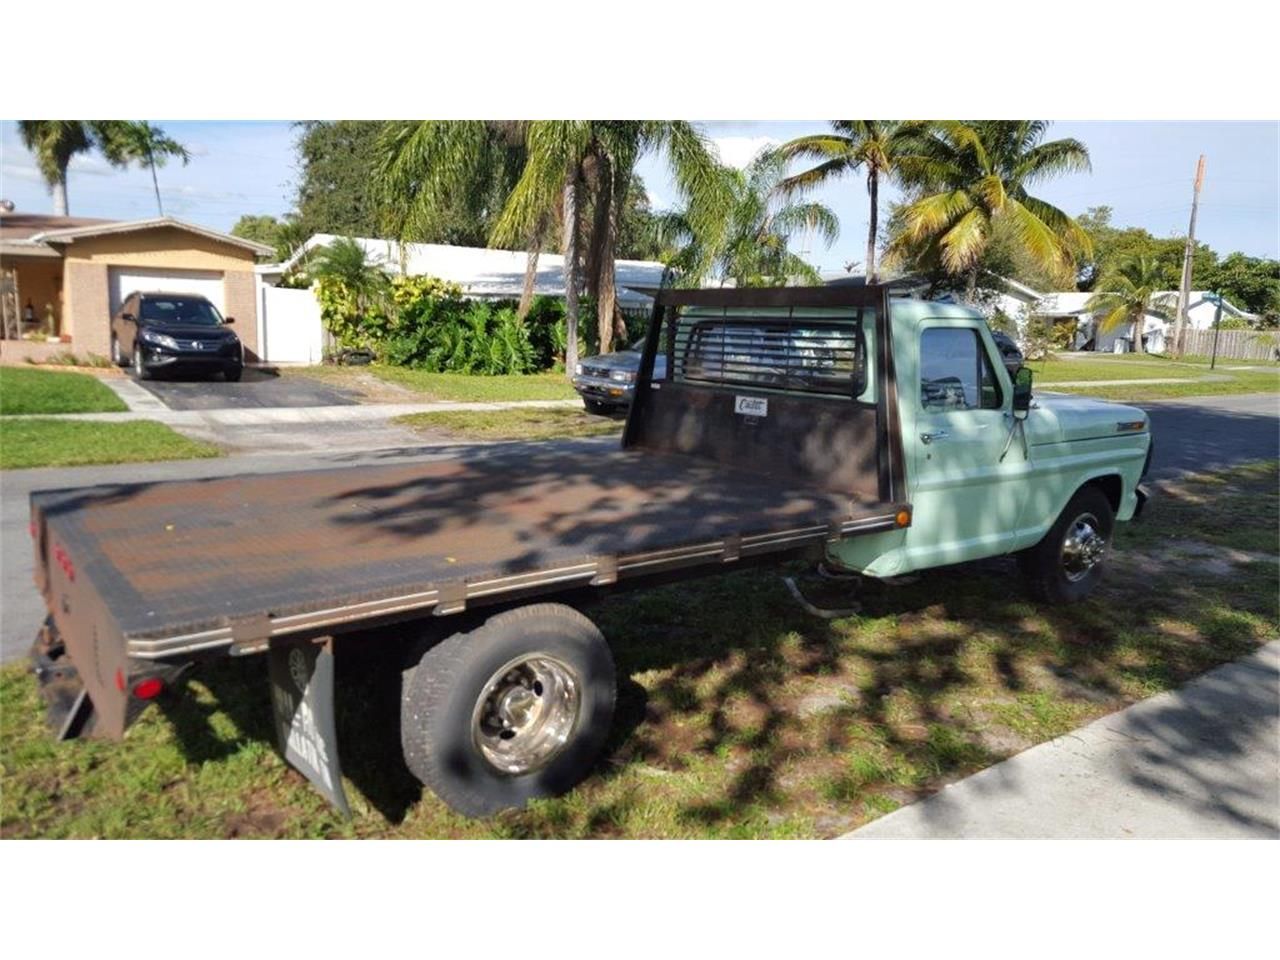 1969 Ford F350 For Sale Cc 880337 Tow Truck Large Picture Of Classic Located In Florida 500000 Offered By A Private